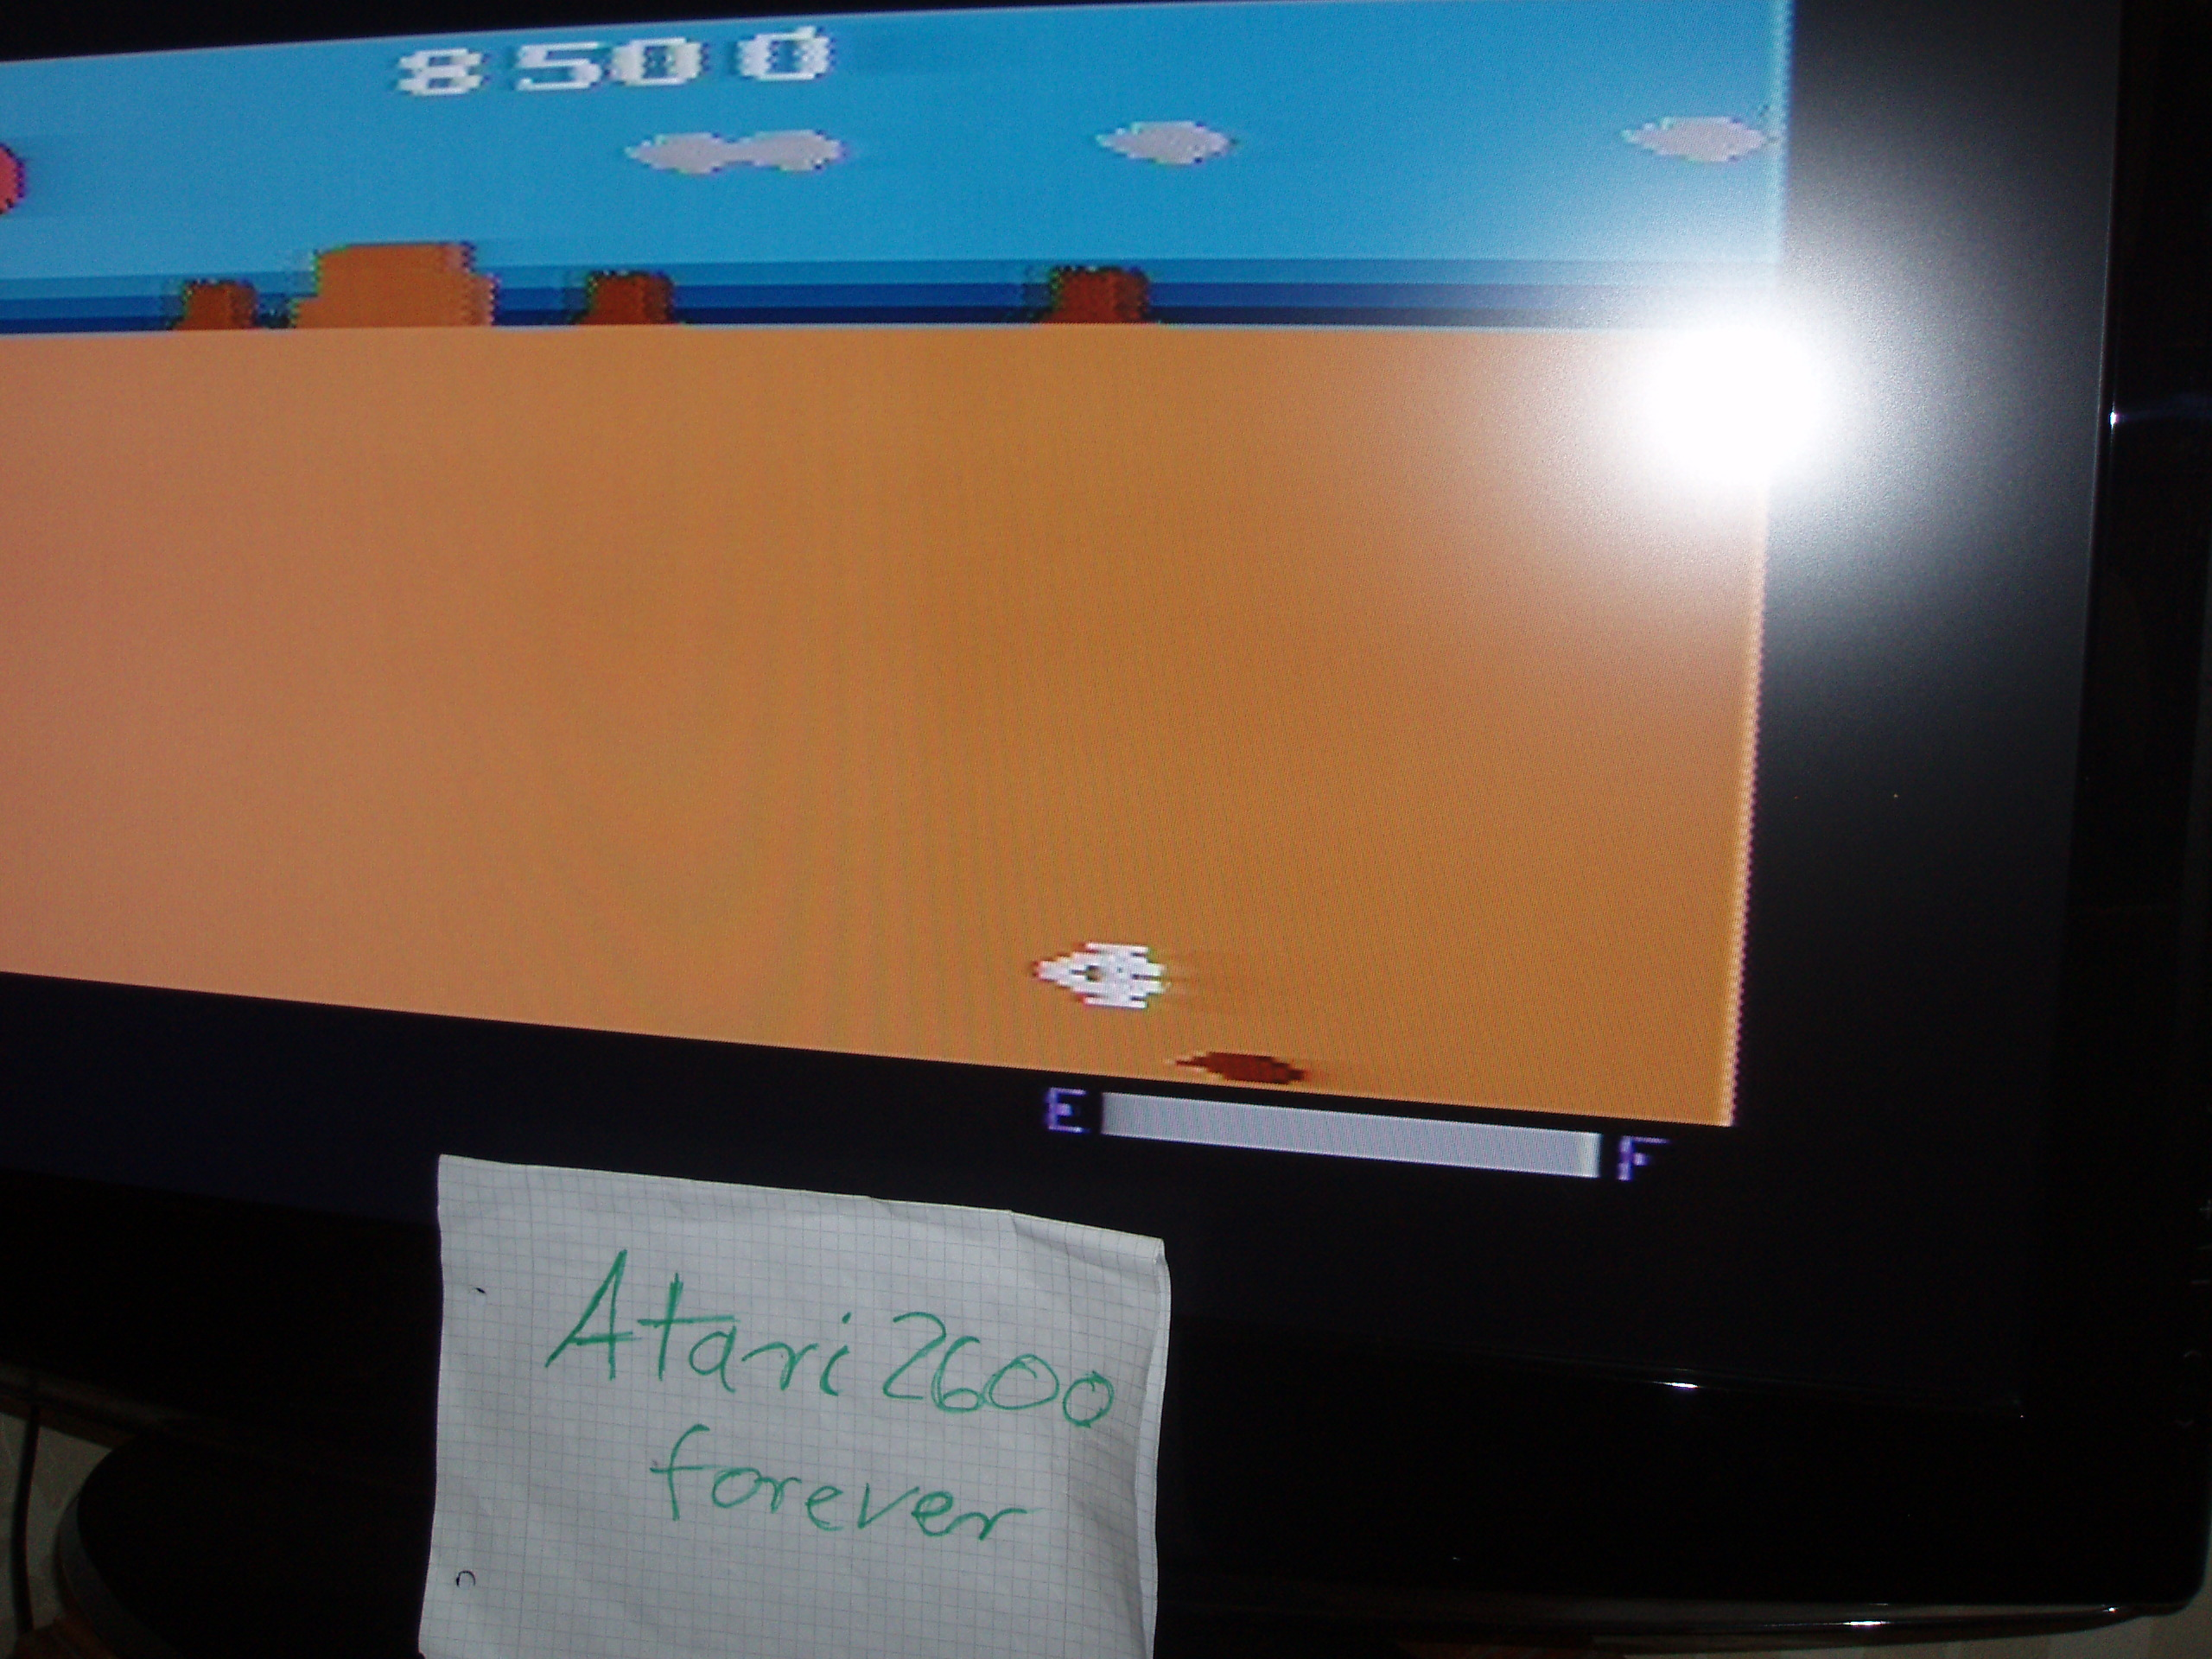 atari2600forever: Planet Patrol (Atari 2600 Novice/B) 8,500 points on 2016-05-04 03:25:45